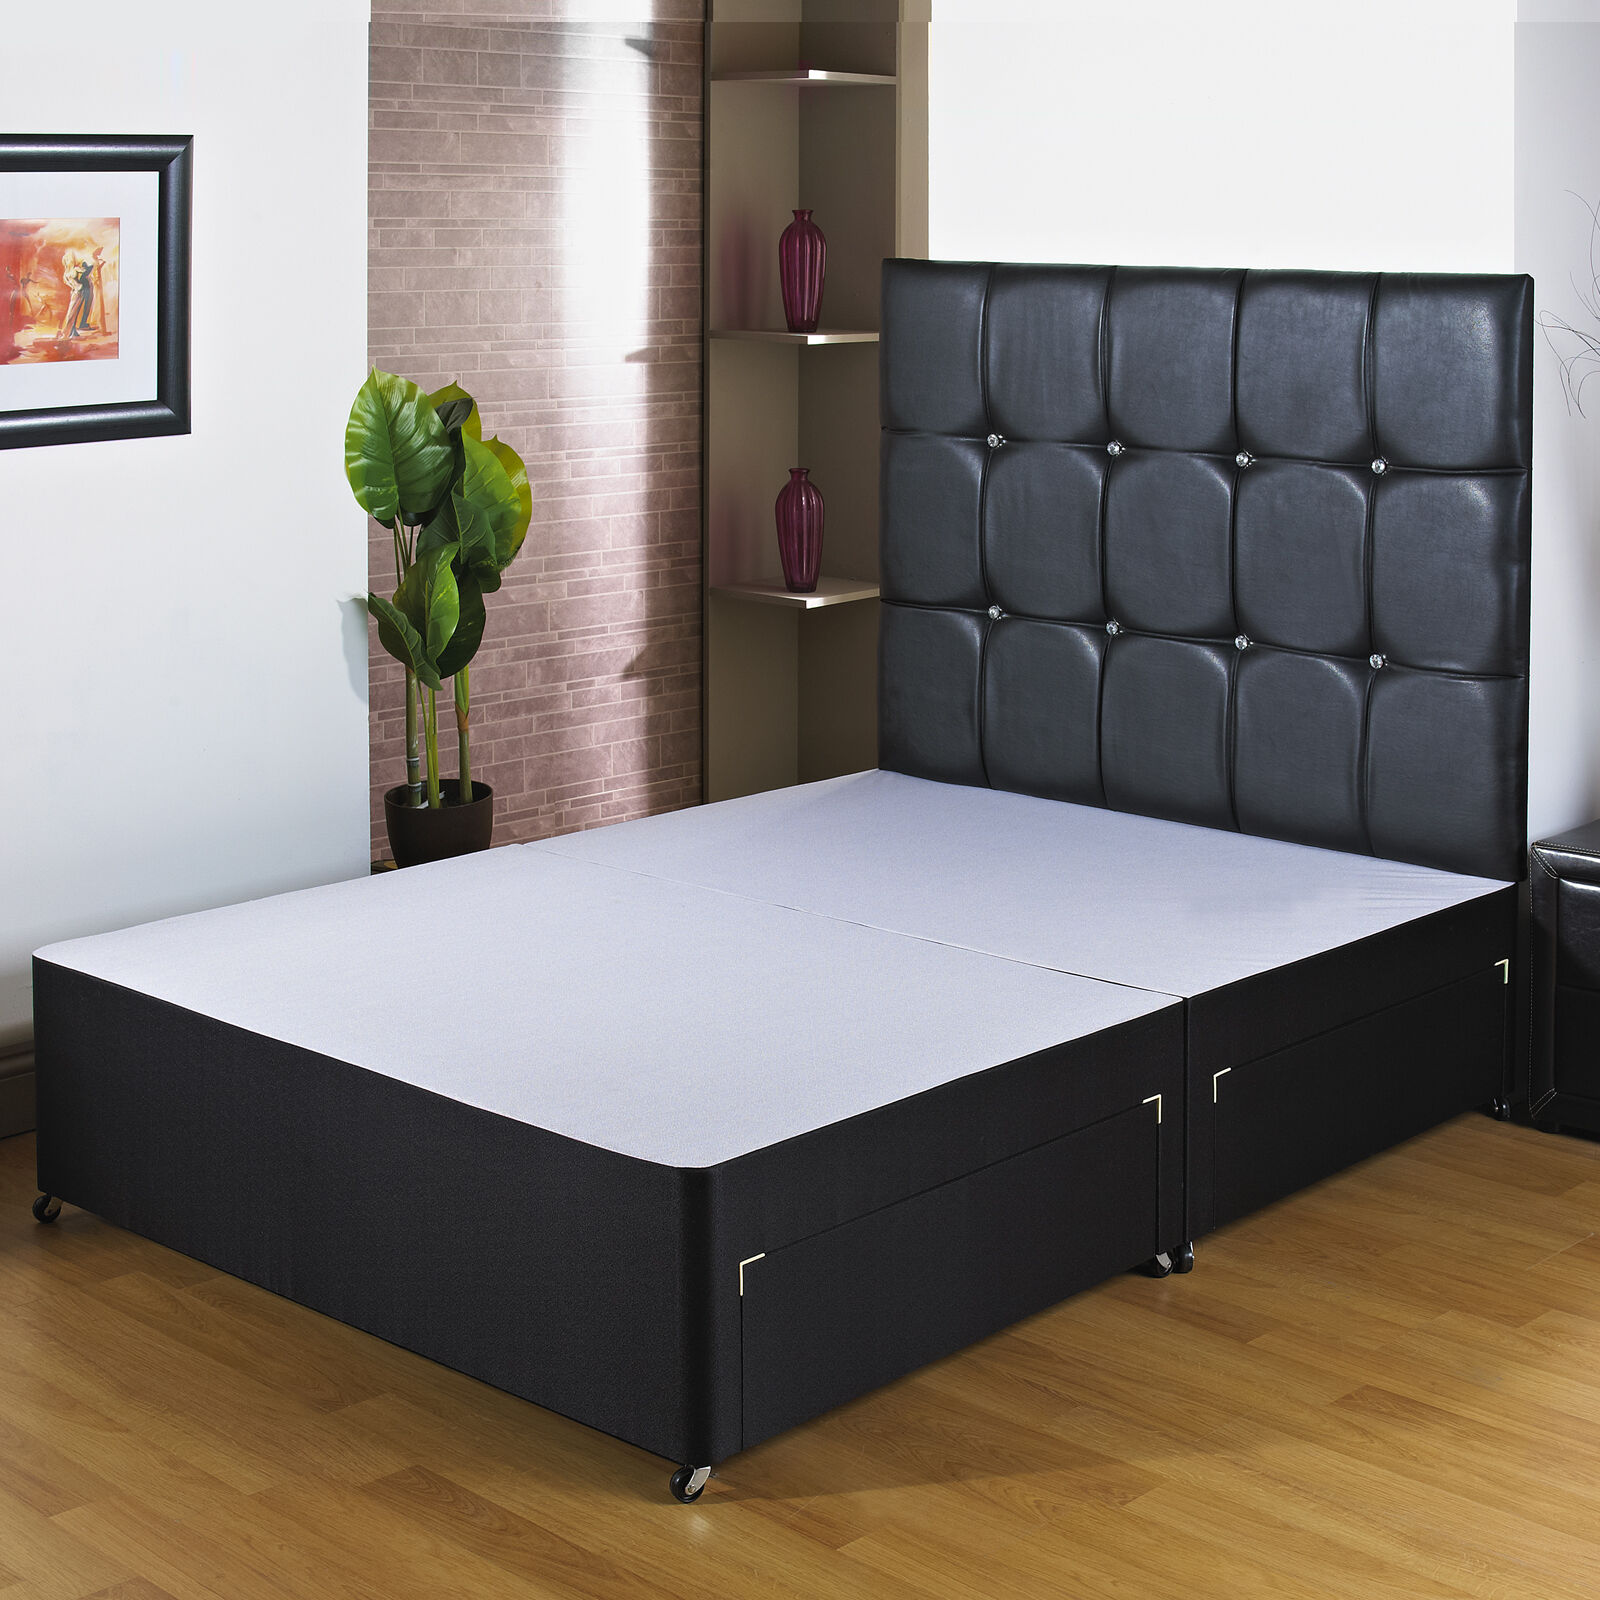 Free End Drawer Black Divan Bed Base Storage 3ft6 4ft 4ft6 Double 5ft Kingsize Ebay